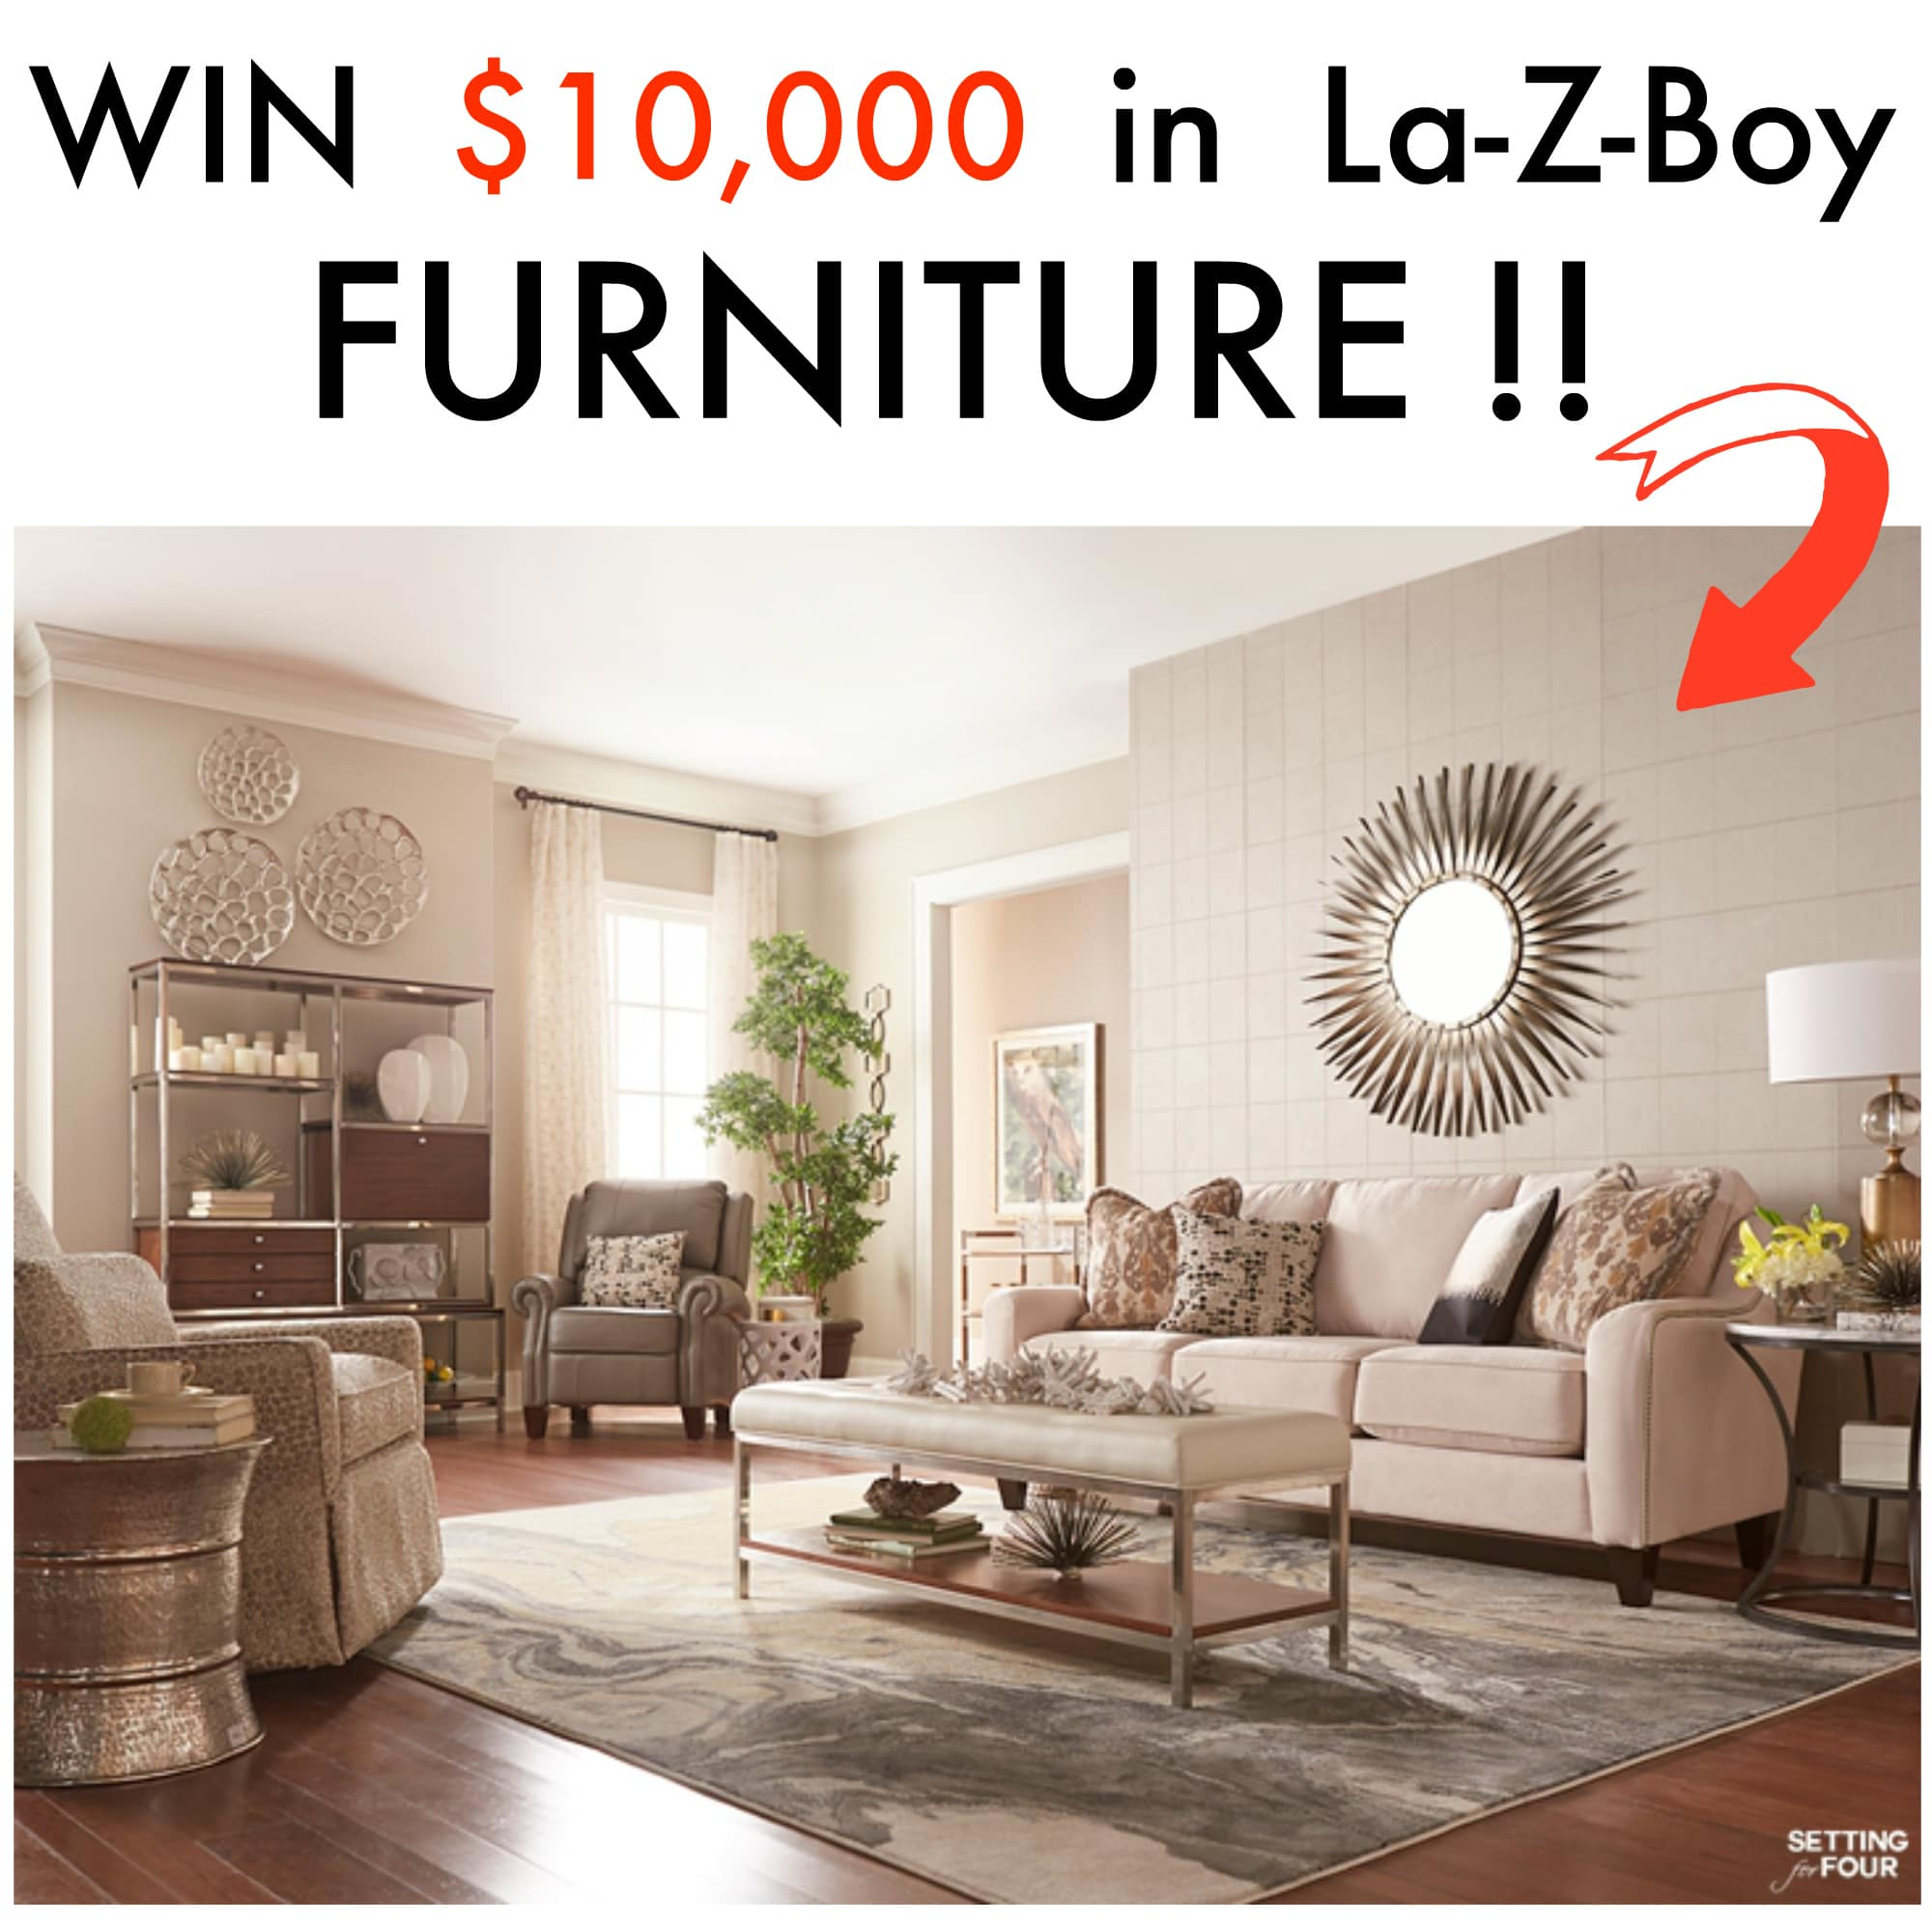 Design Dash - Vote to win $10,000 La--Boy furniture1